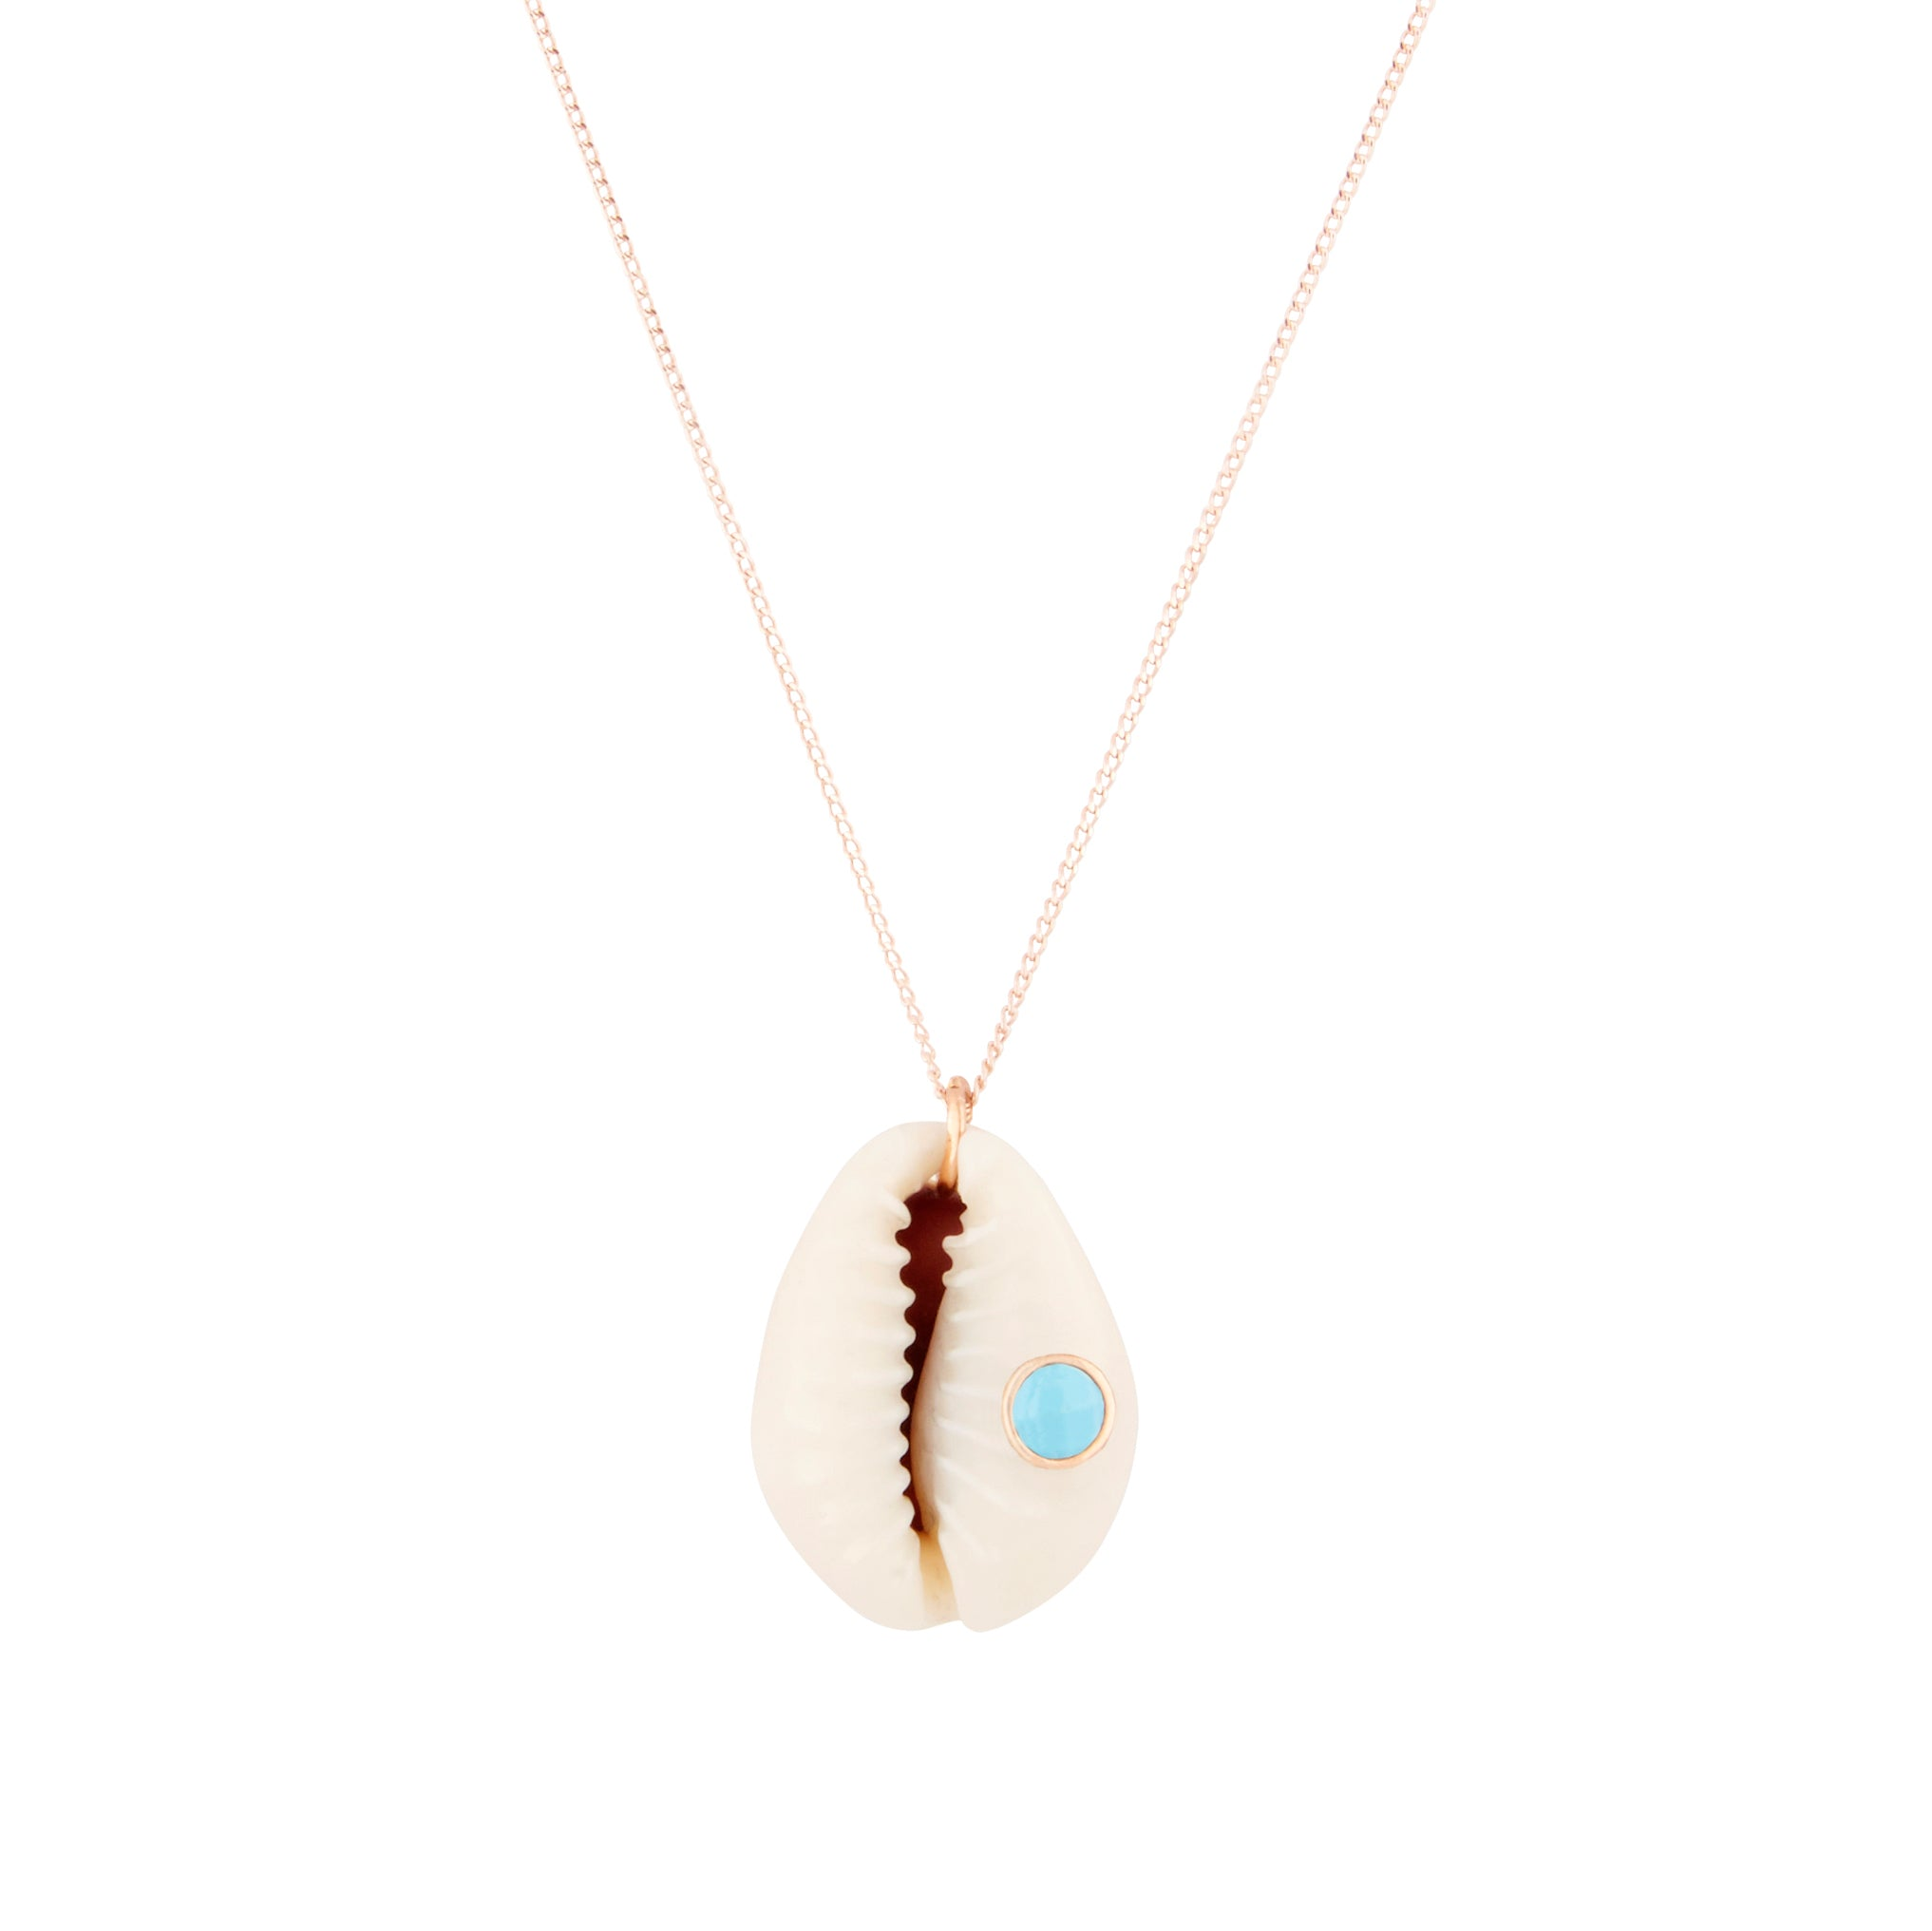 cauri turquoise necklace